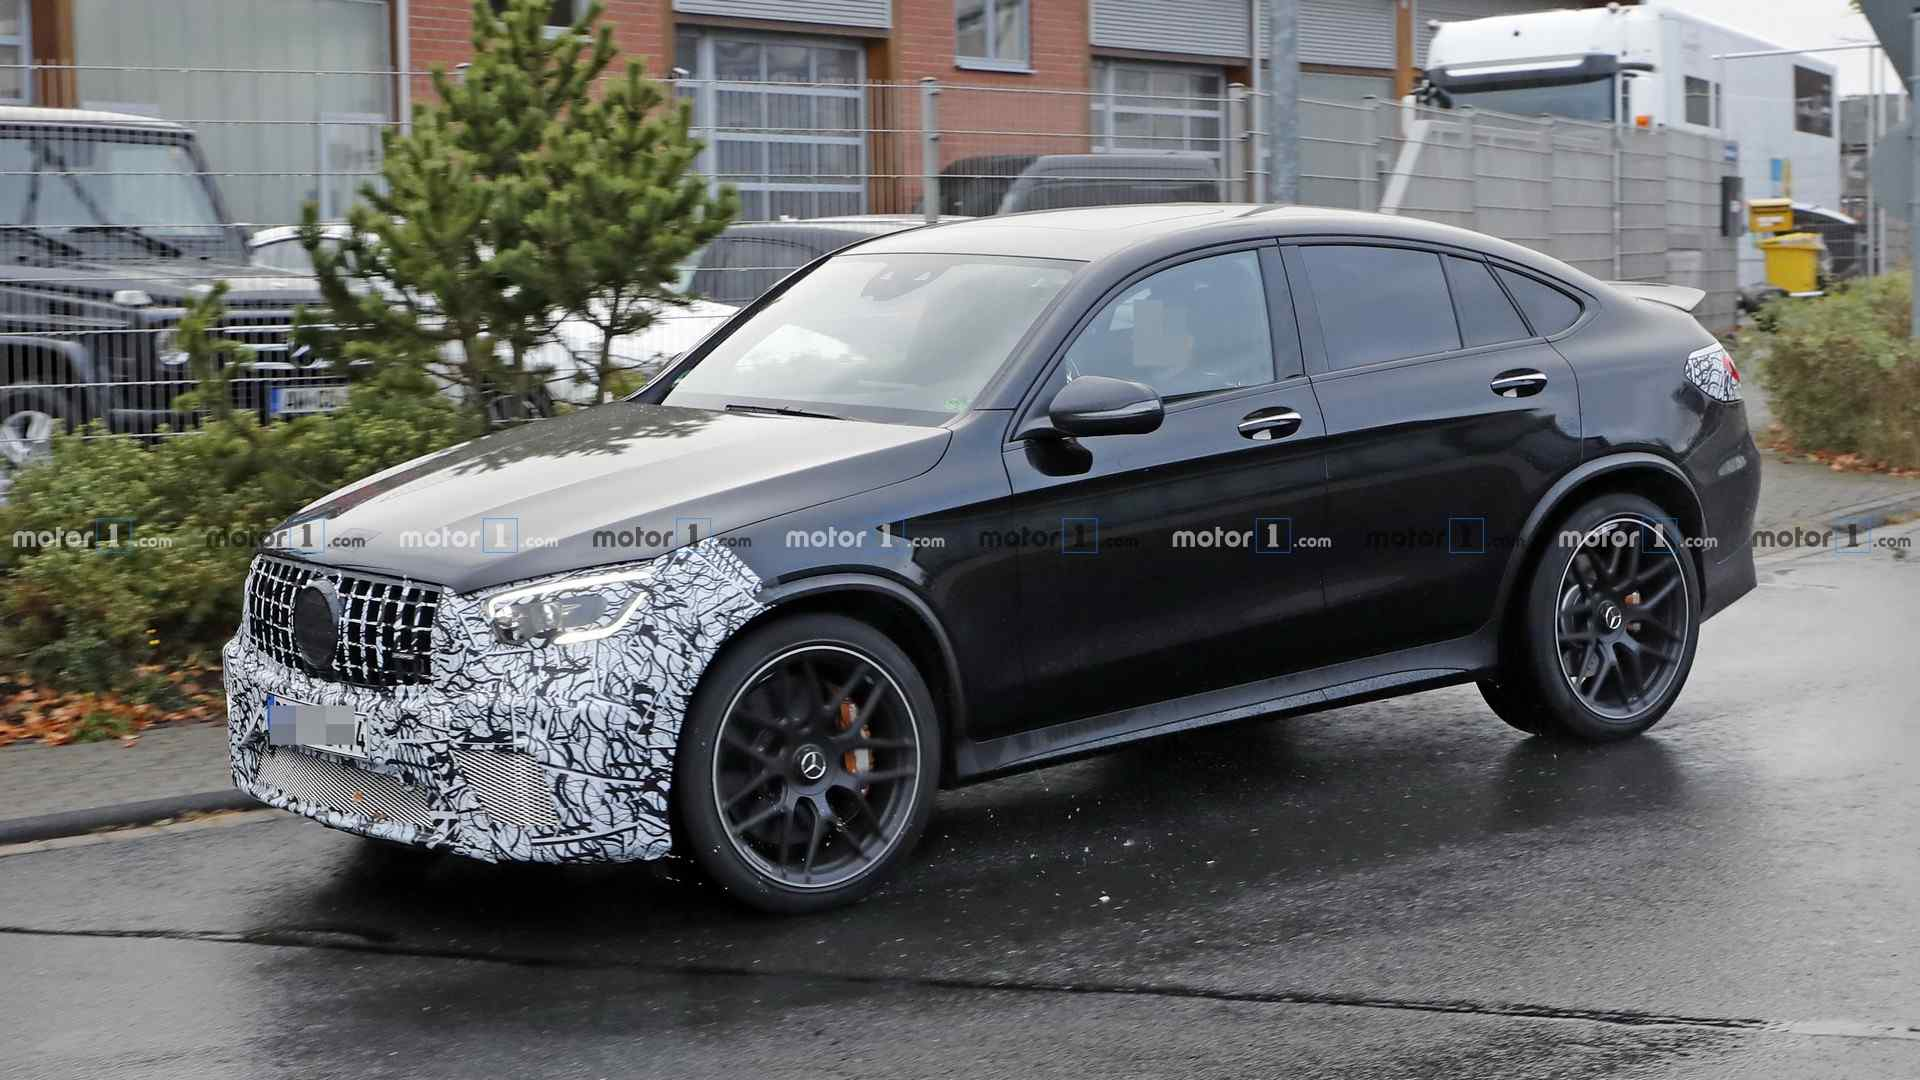 47 New Mercedes Glc 2020 Pictures with Mercedes Glc 2020